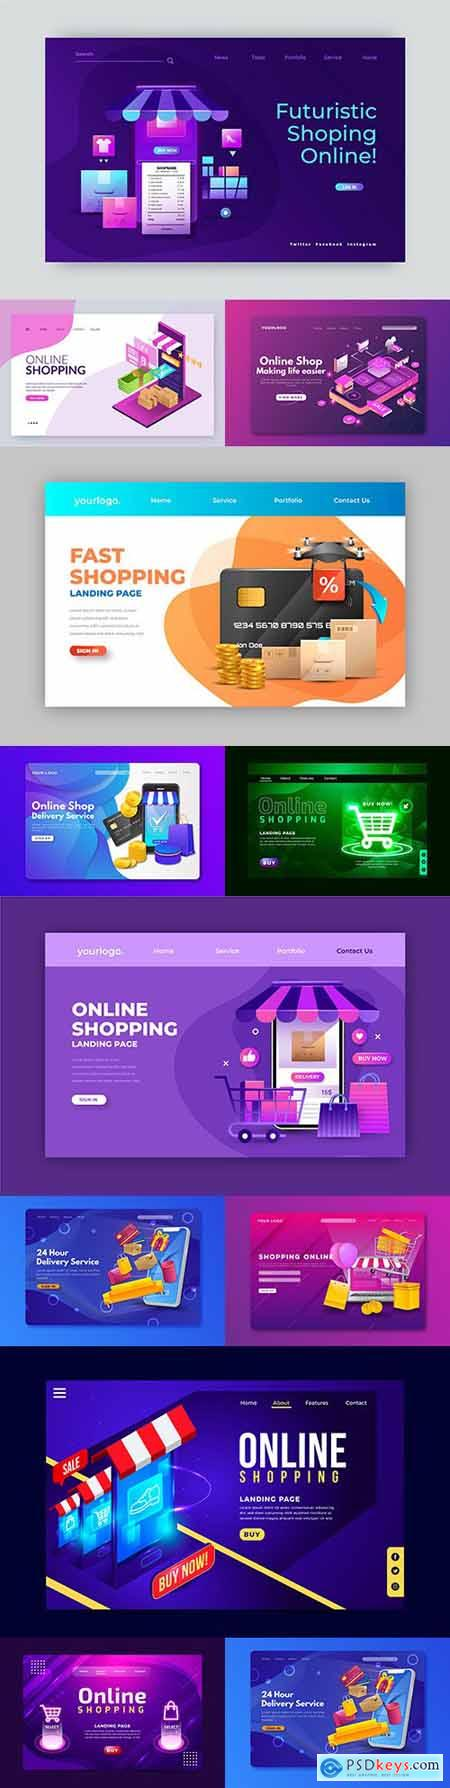 Online shopping realistic landing page design